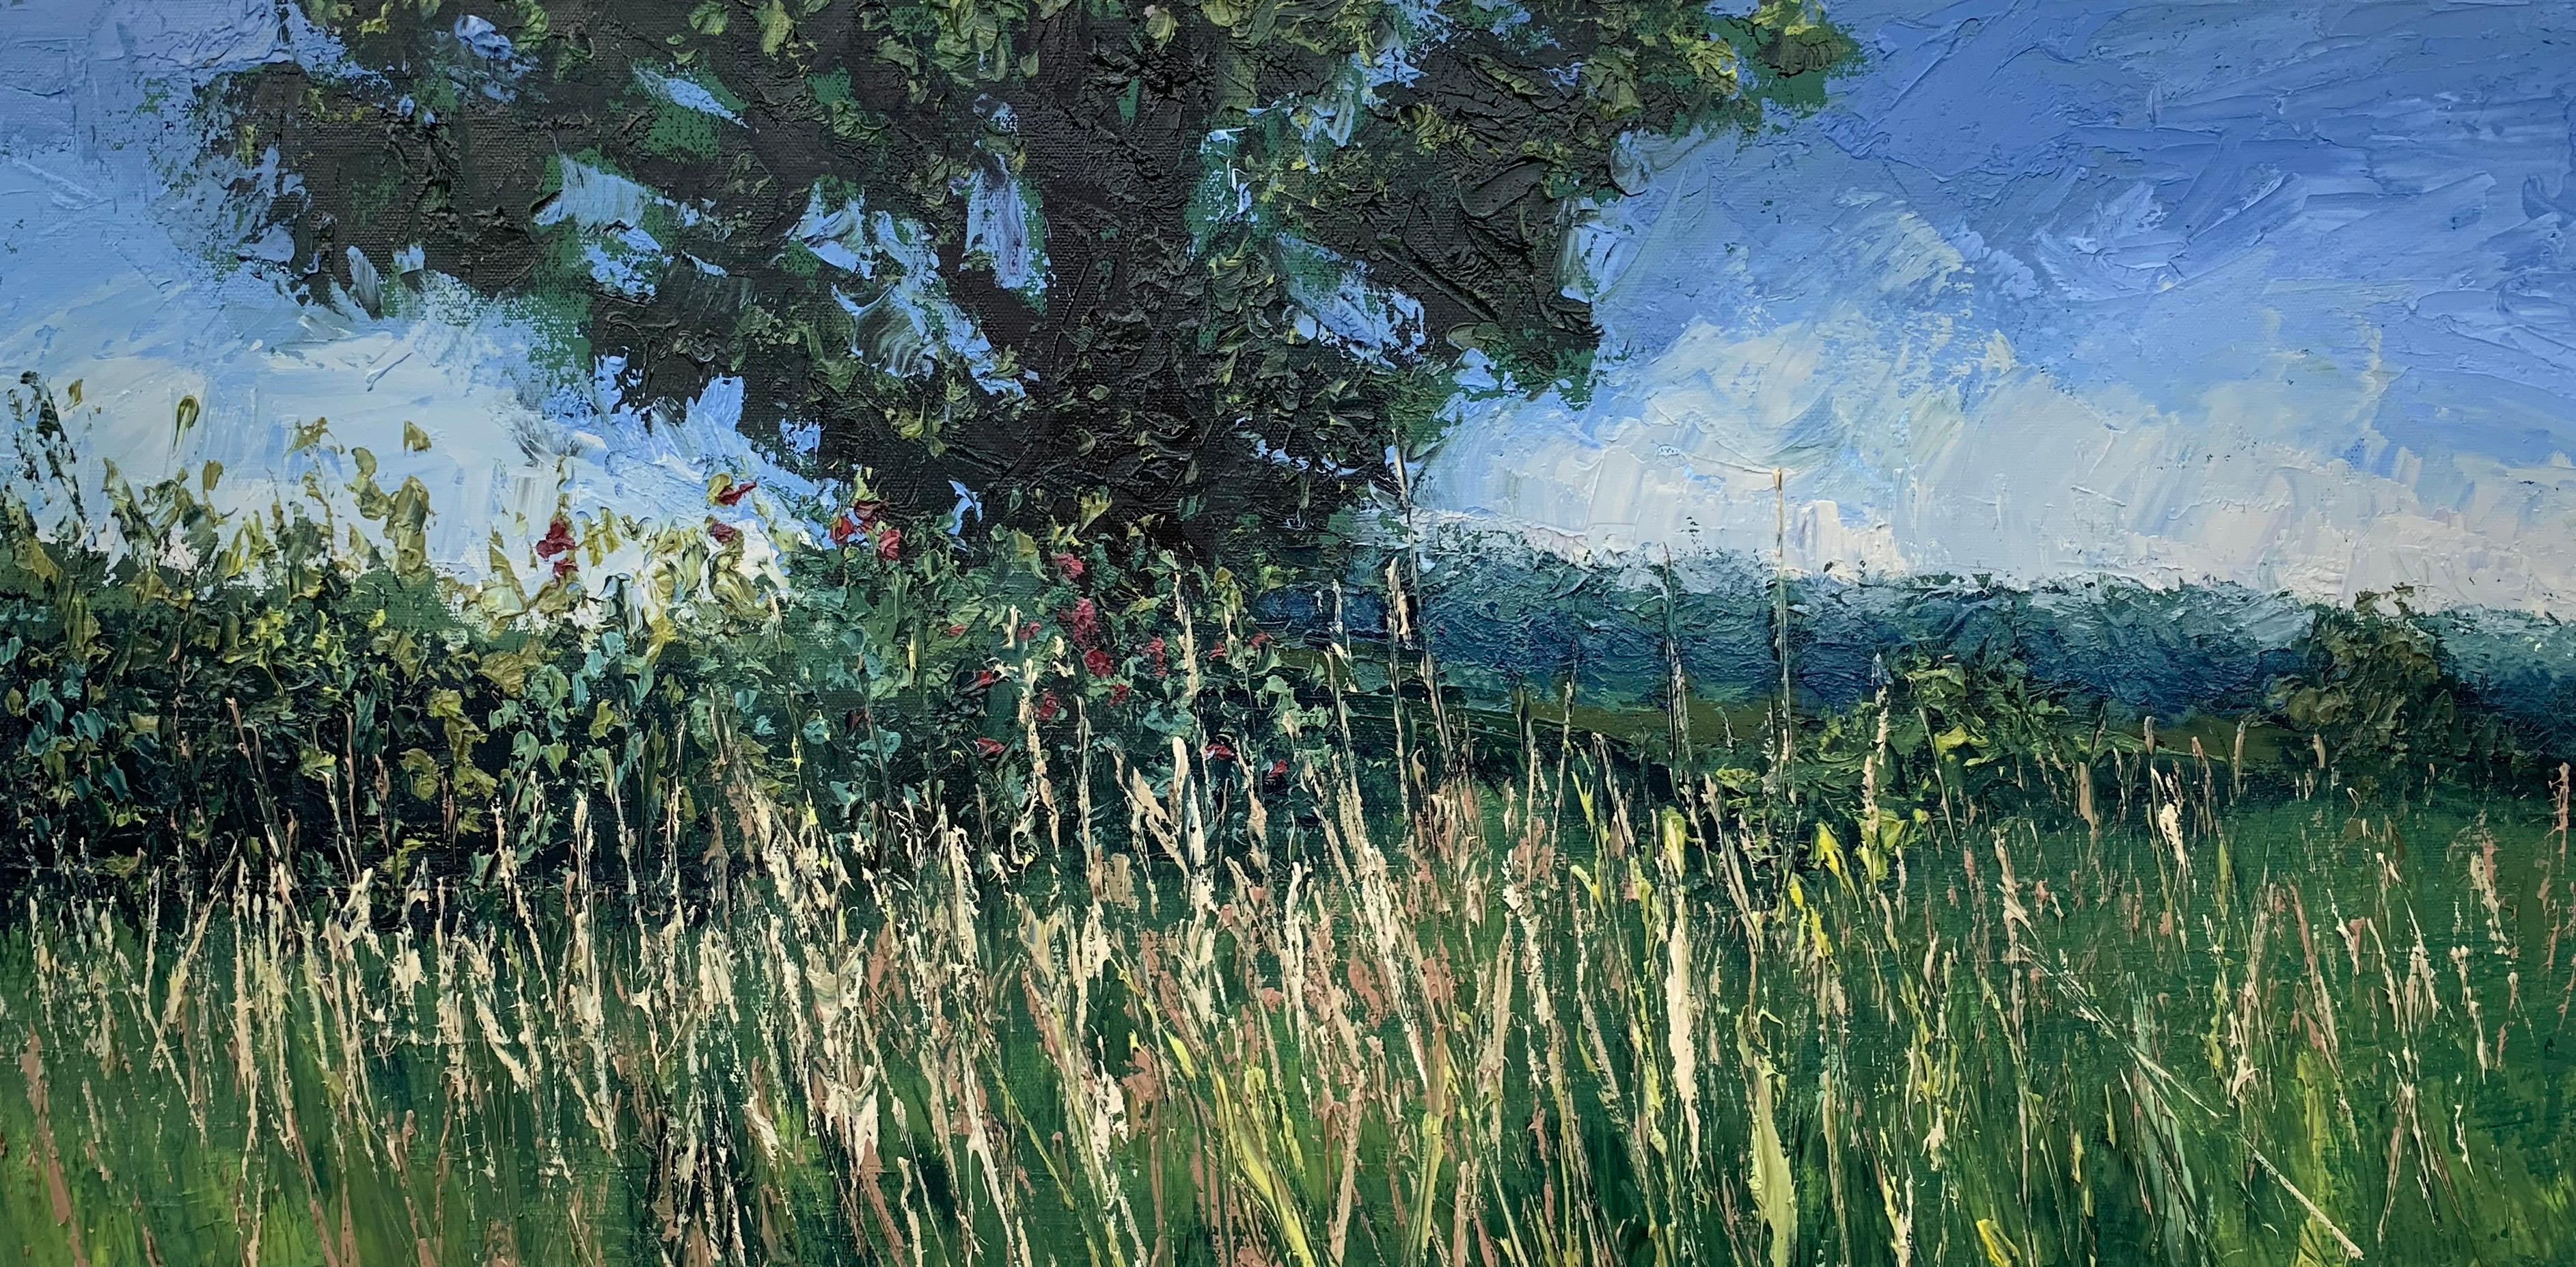 Summer Meadow Landscape Impasto Oil Painting with Tree by British Artist